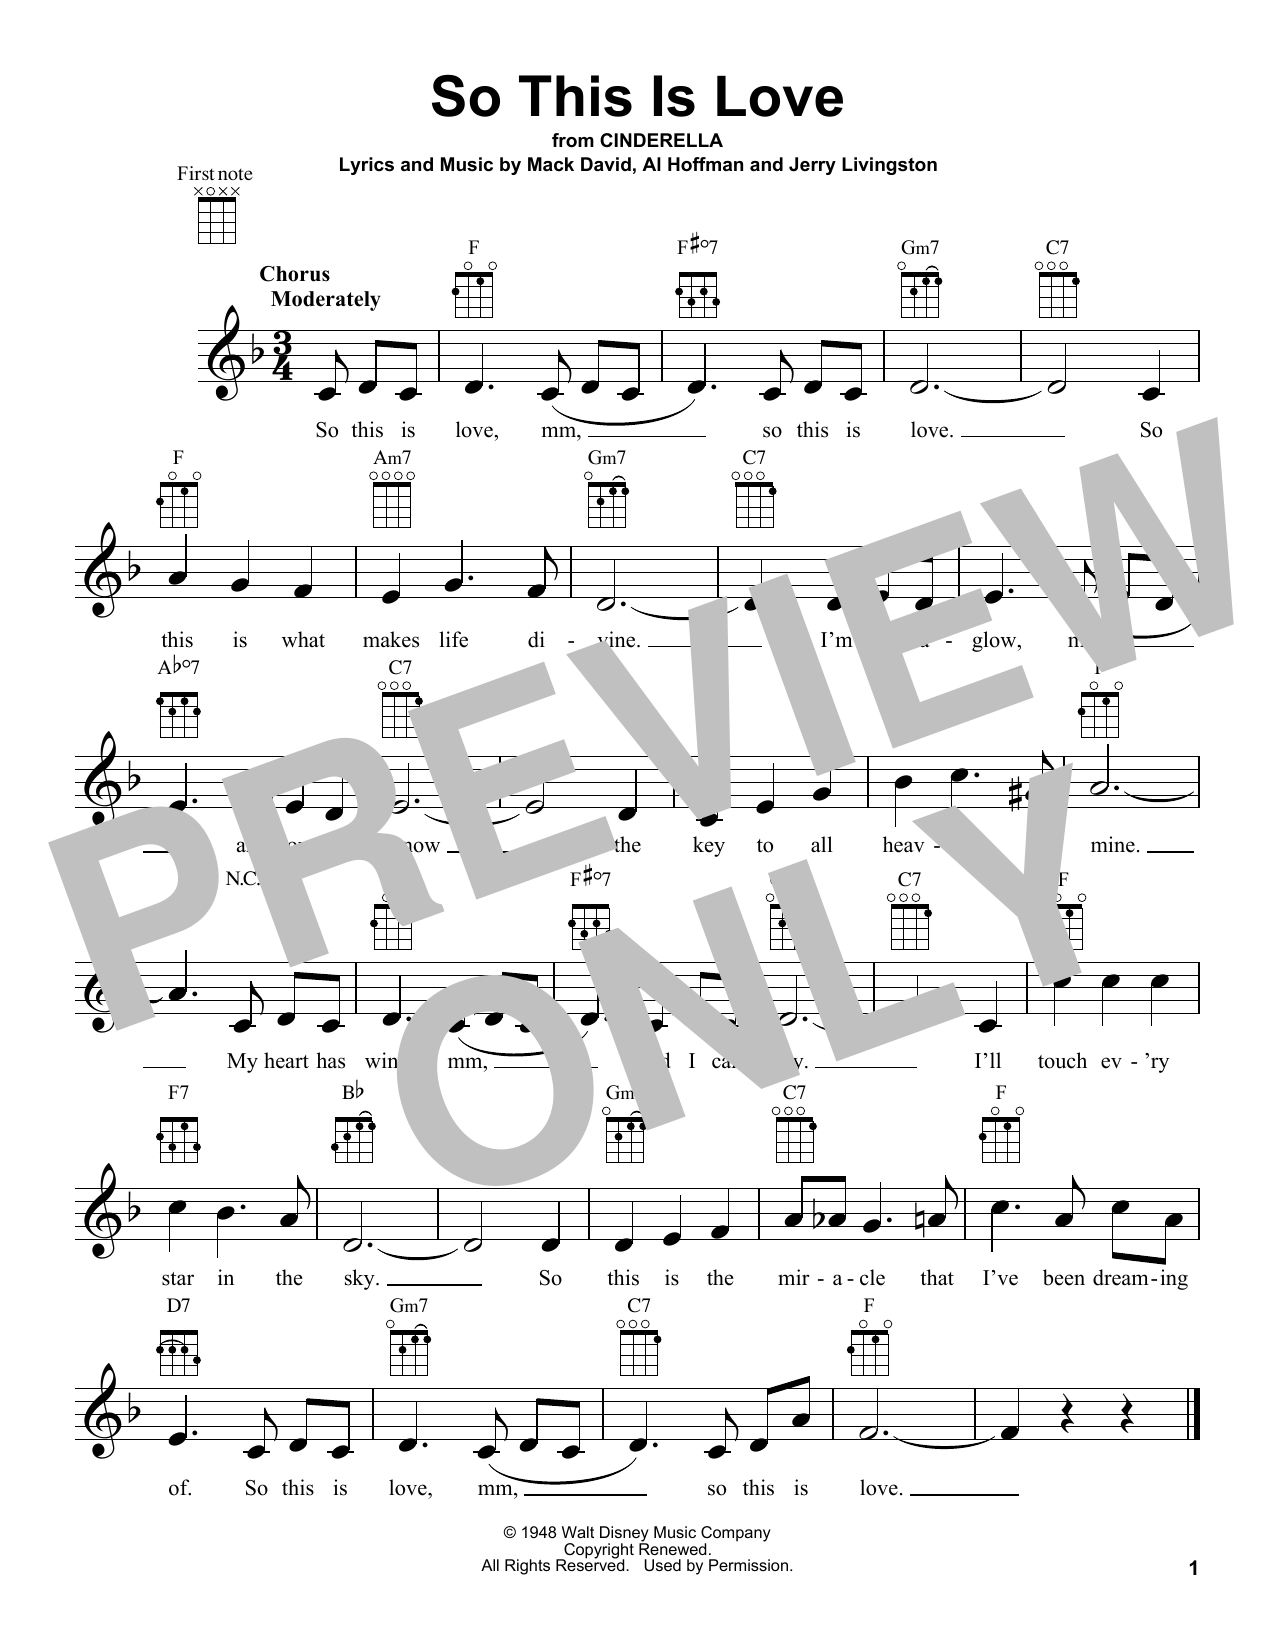 So This Is Love Sheet Music